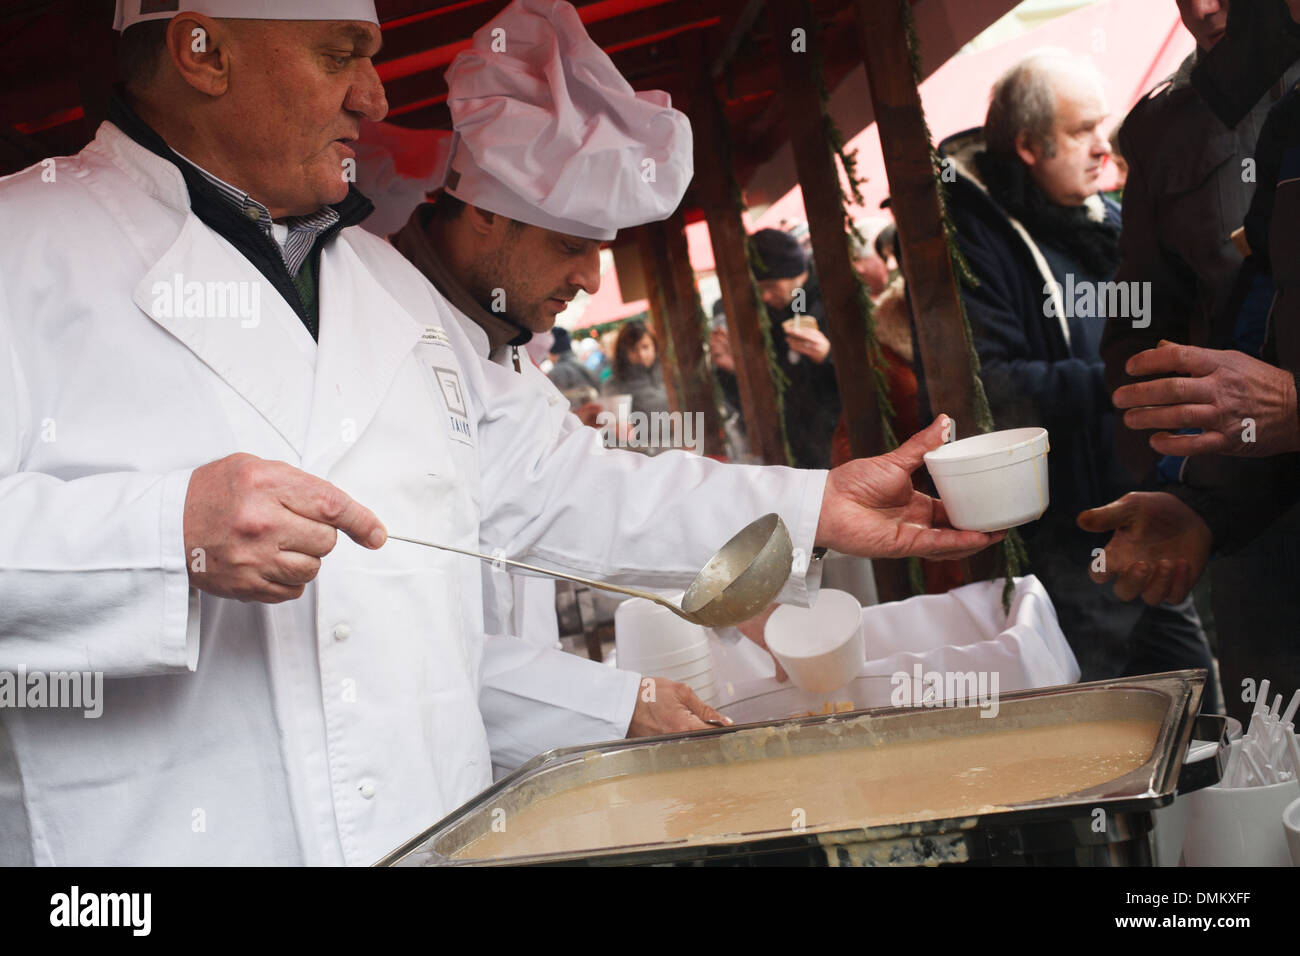 Mayor of Prague of that time Bohuslav Svoboda gives away free fish soup at Old Town Square in Prague, Czech Republic - Stock Image